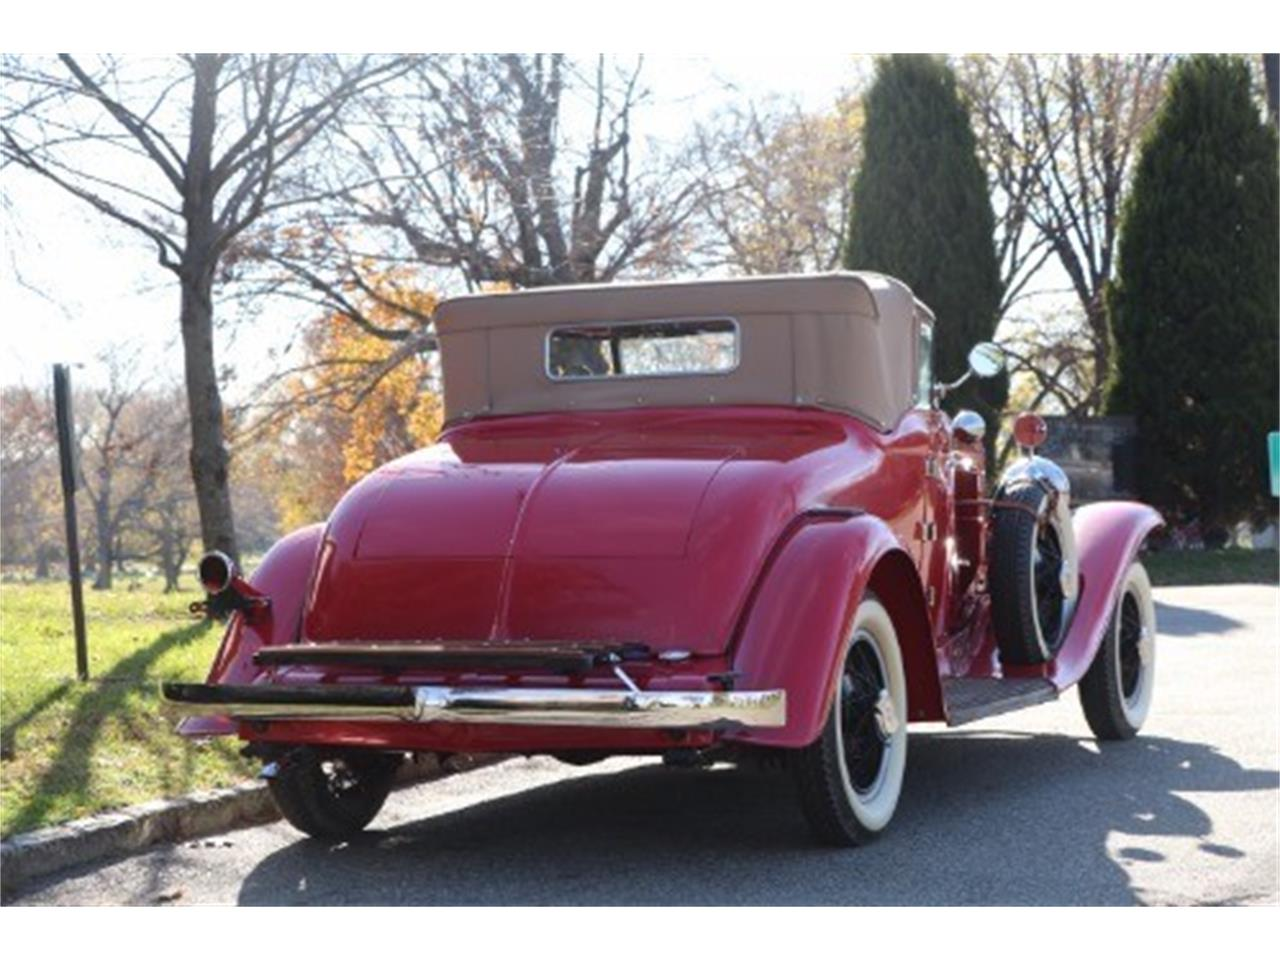 Large Picture of 1931 Auburn 8-98A - $87,500.00 Offered by Gullwing Motor Cars - JWLH